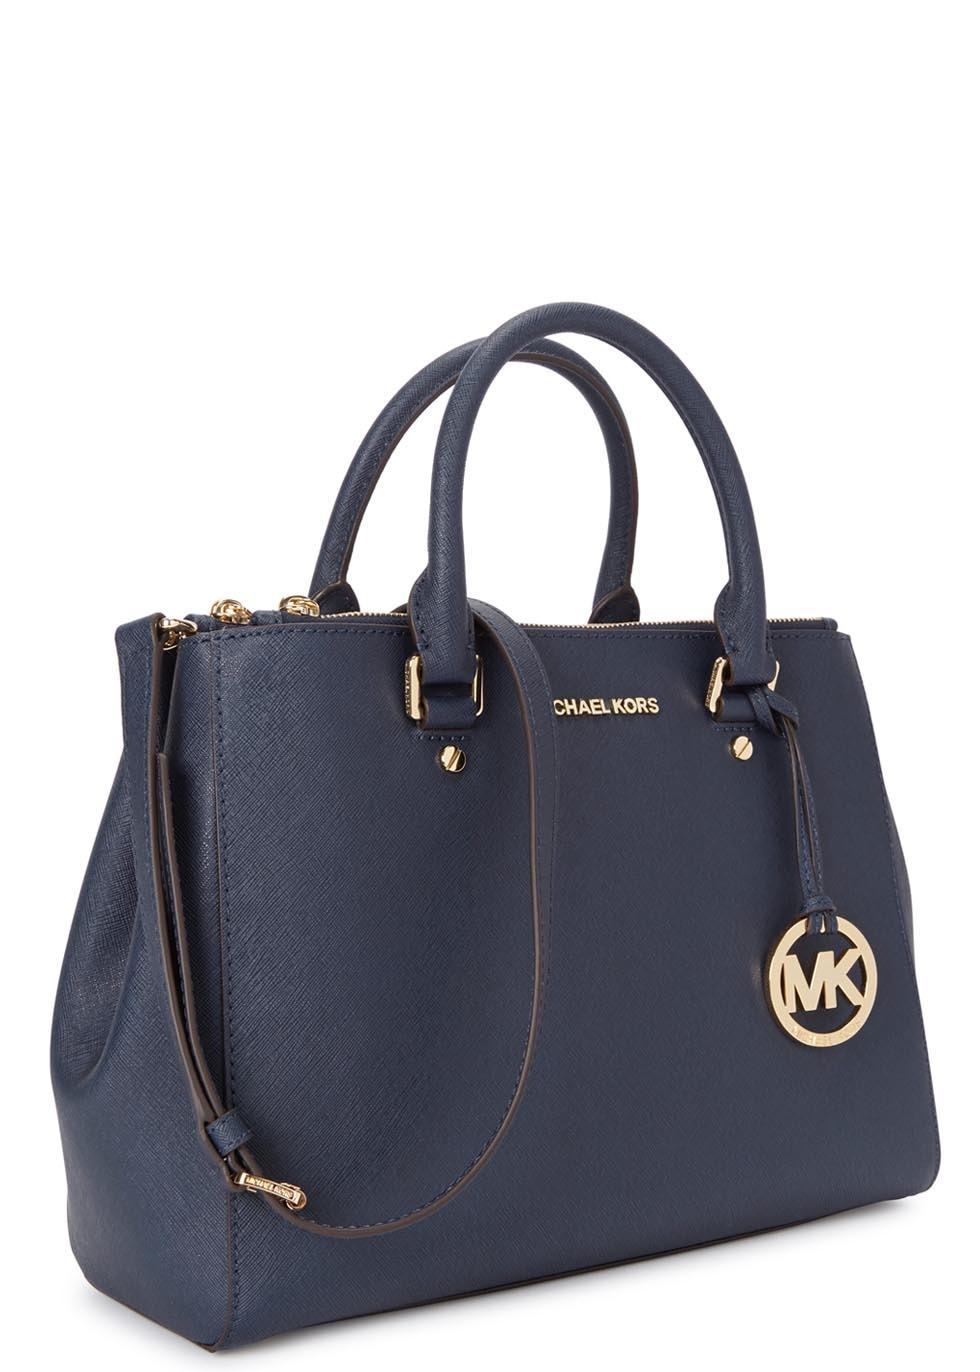 148da0d81ce23b Michael Kors Sutton Medium Navy Leather Tote in Blue - Lyst